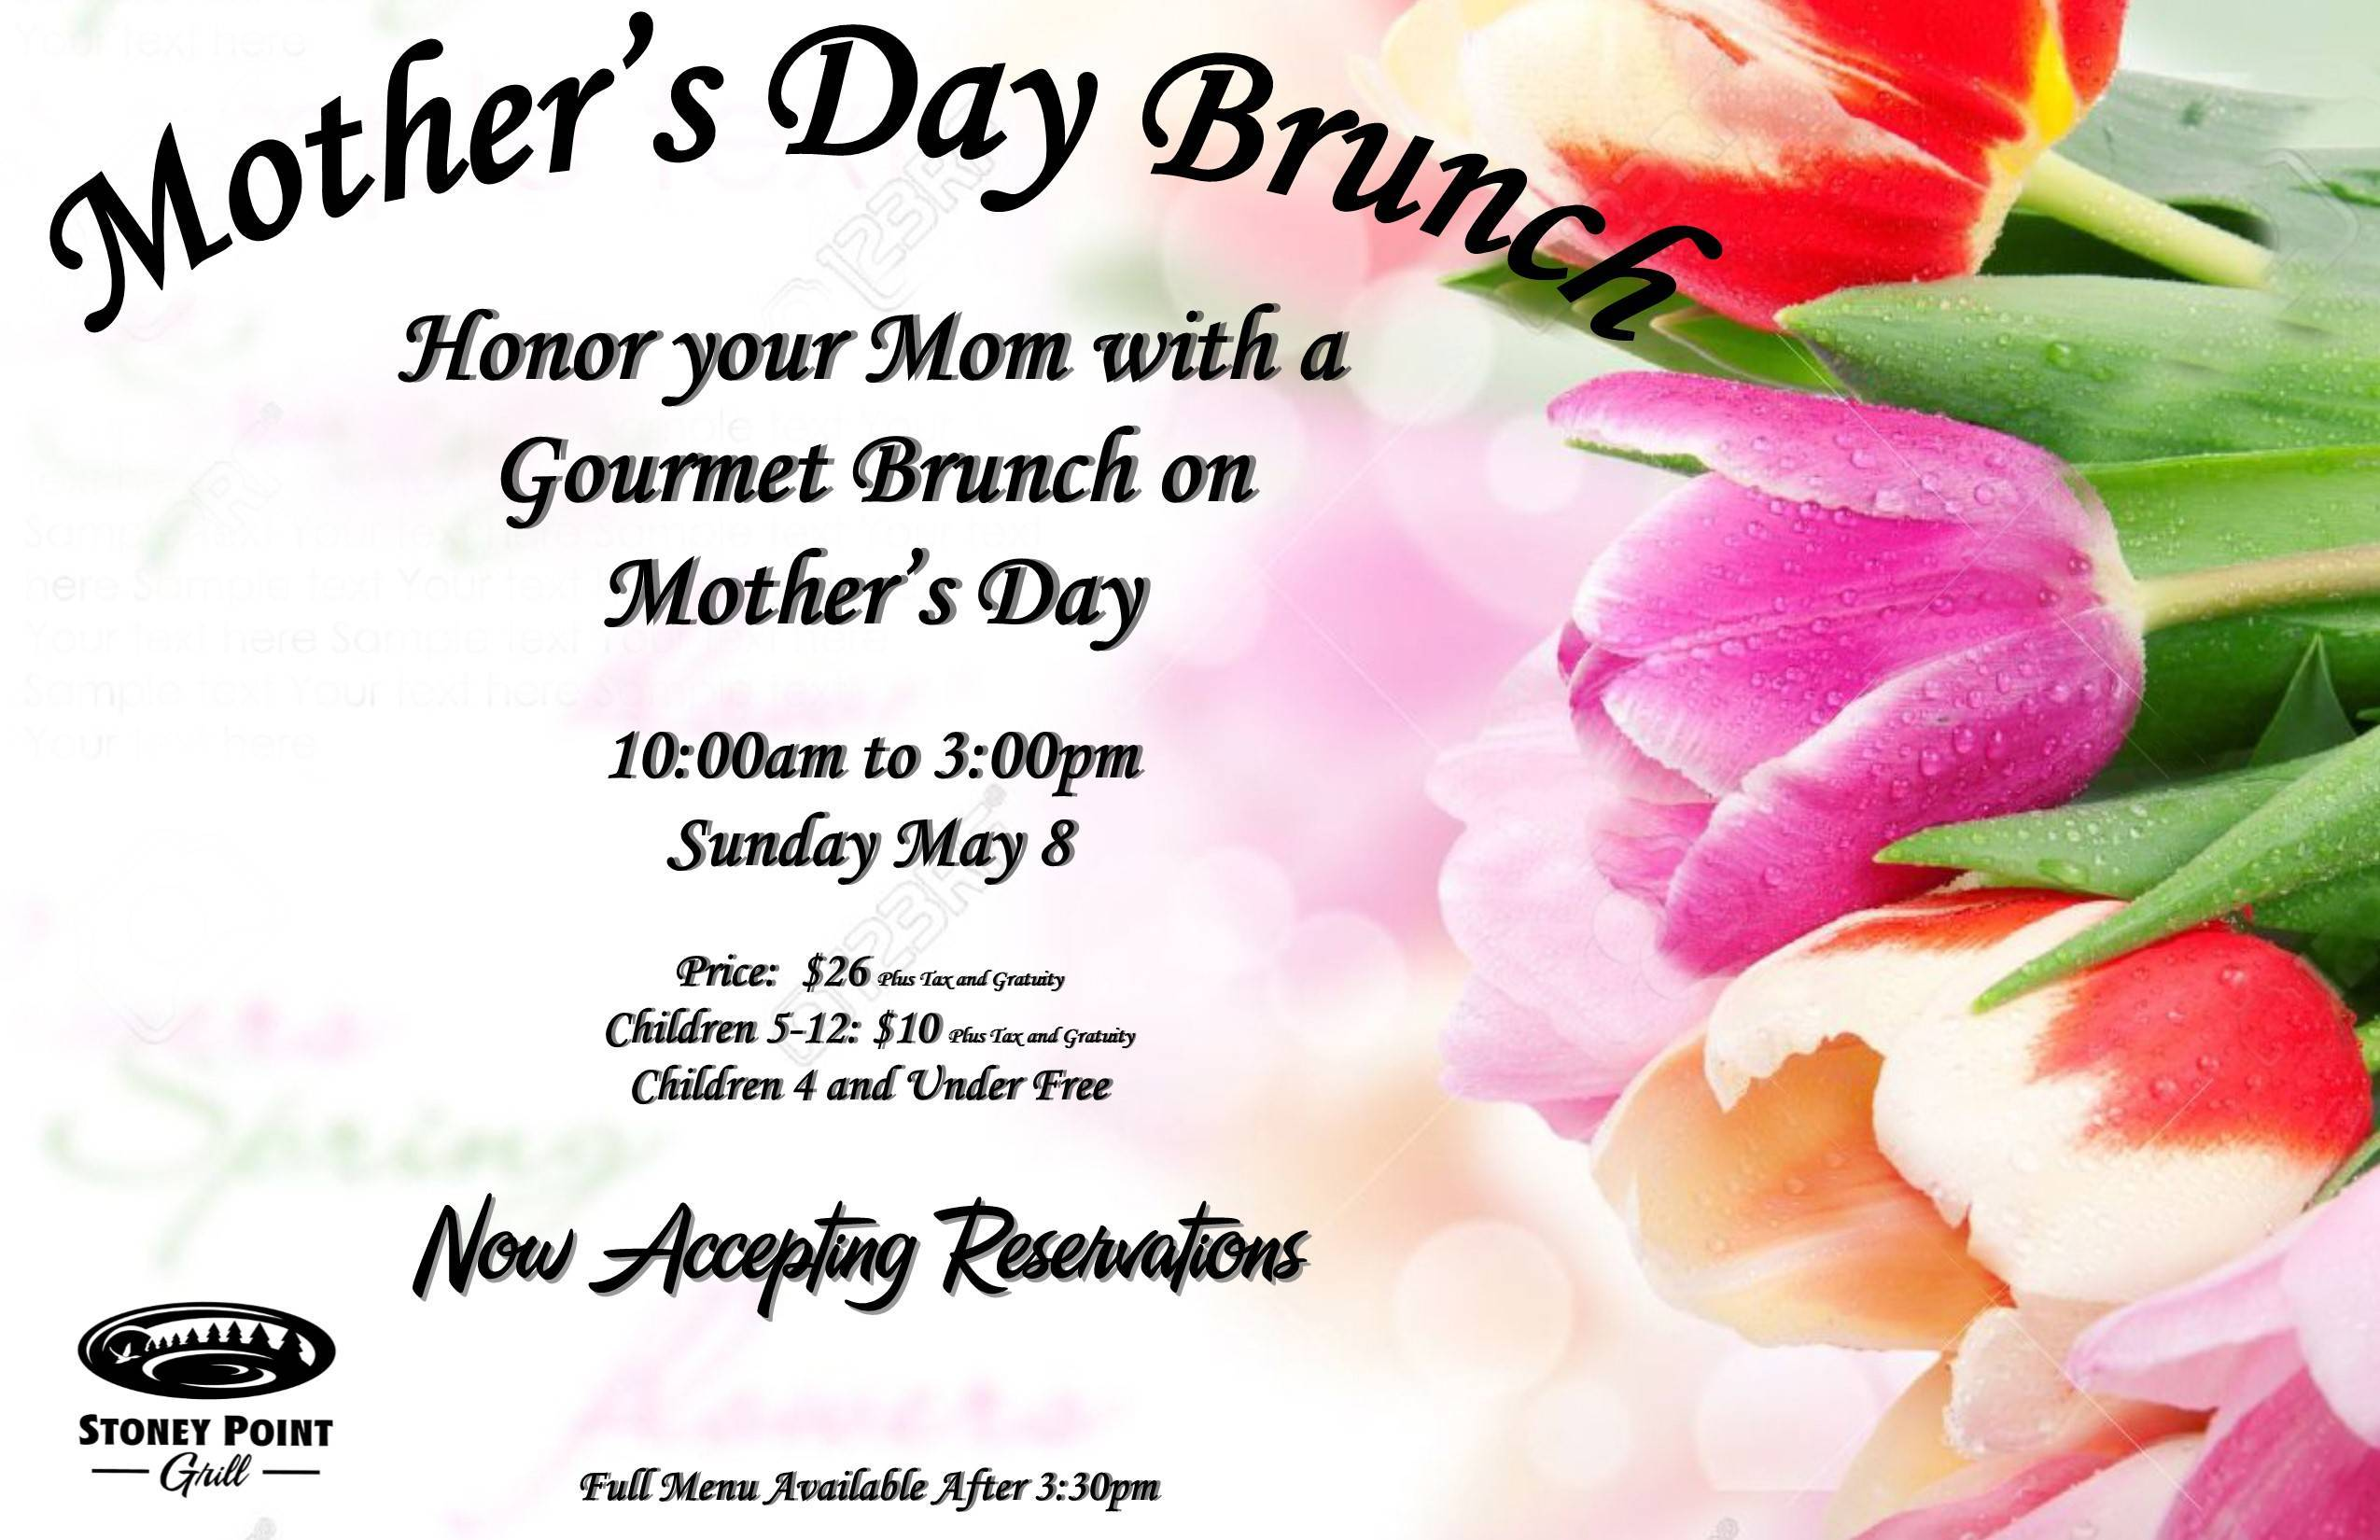 Mother's Day 2016 Flyer